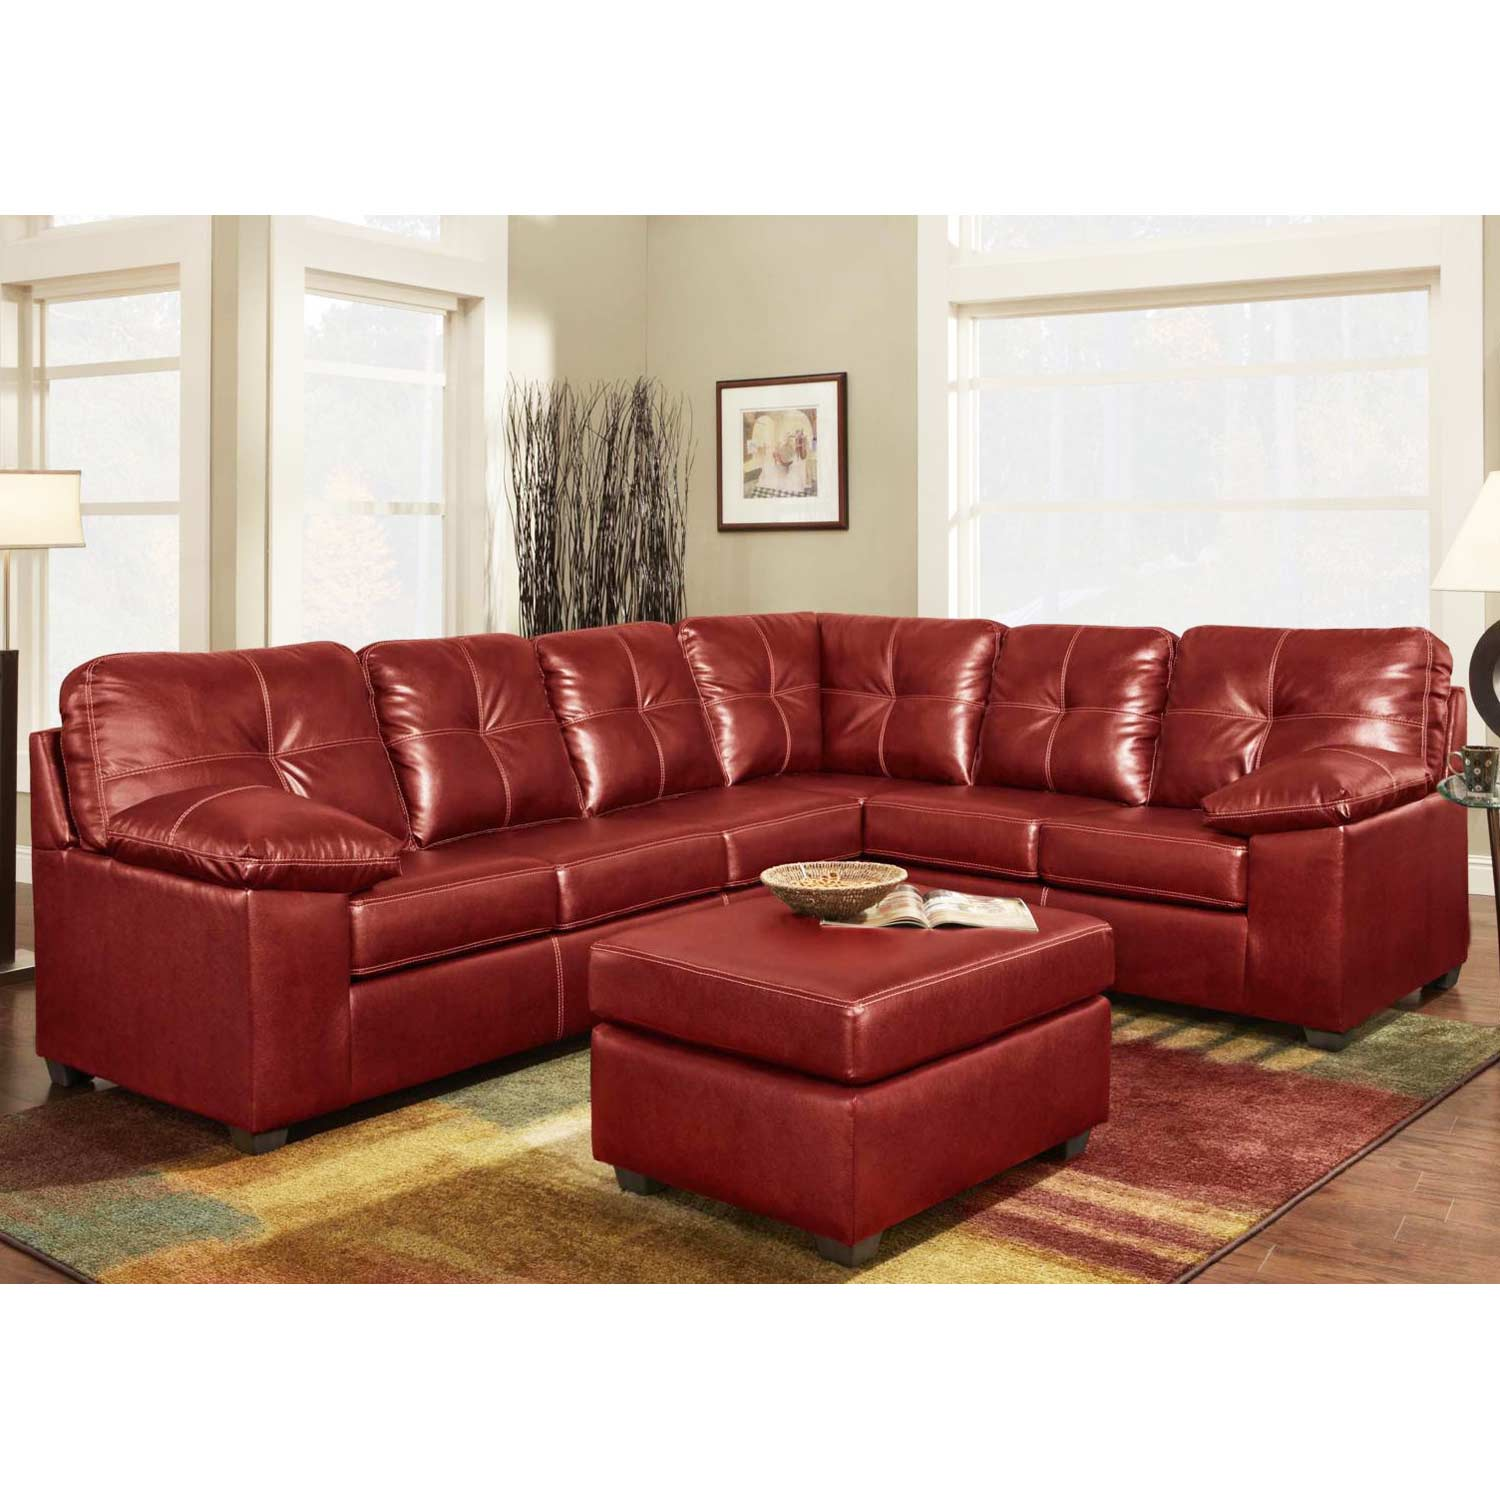 Tamera Leather Sectional Sofa - Contrast Stitching, Ty Red